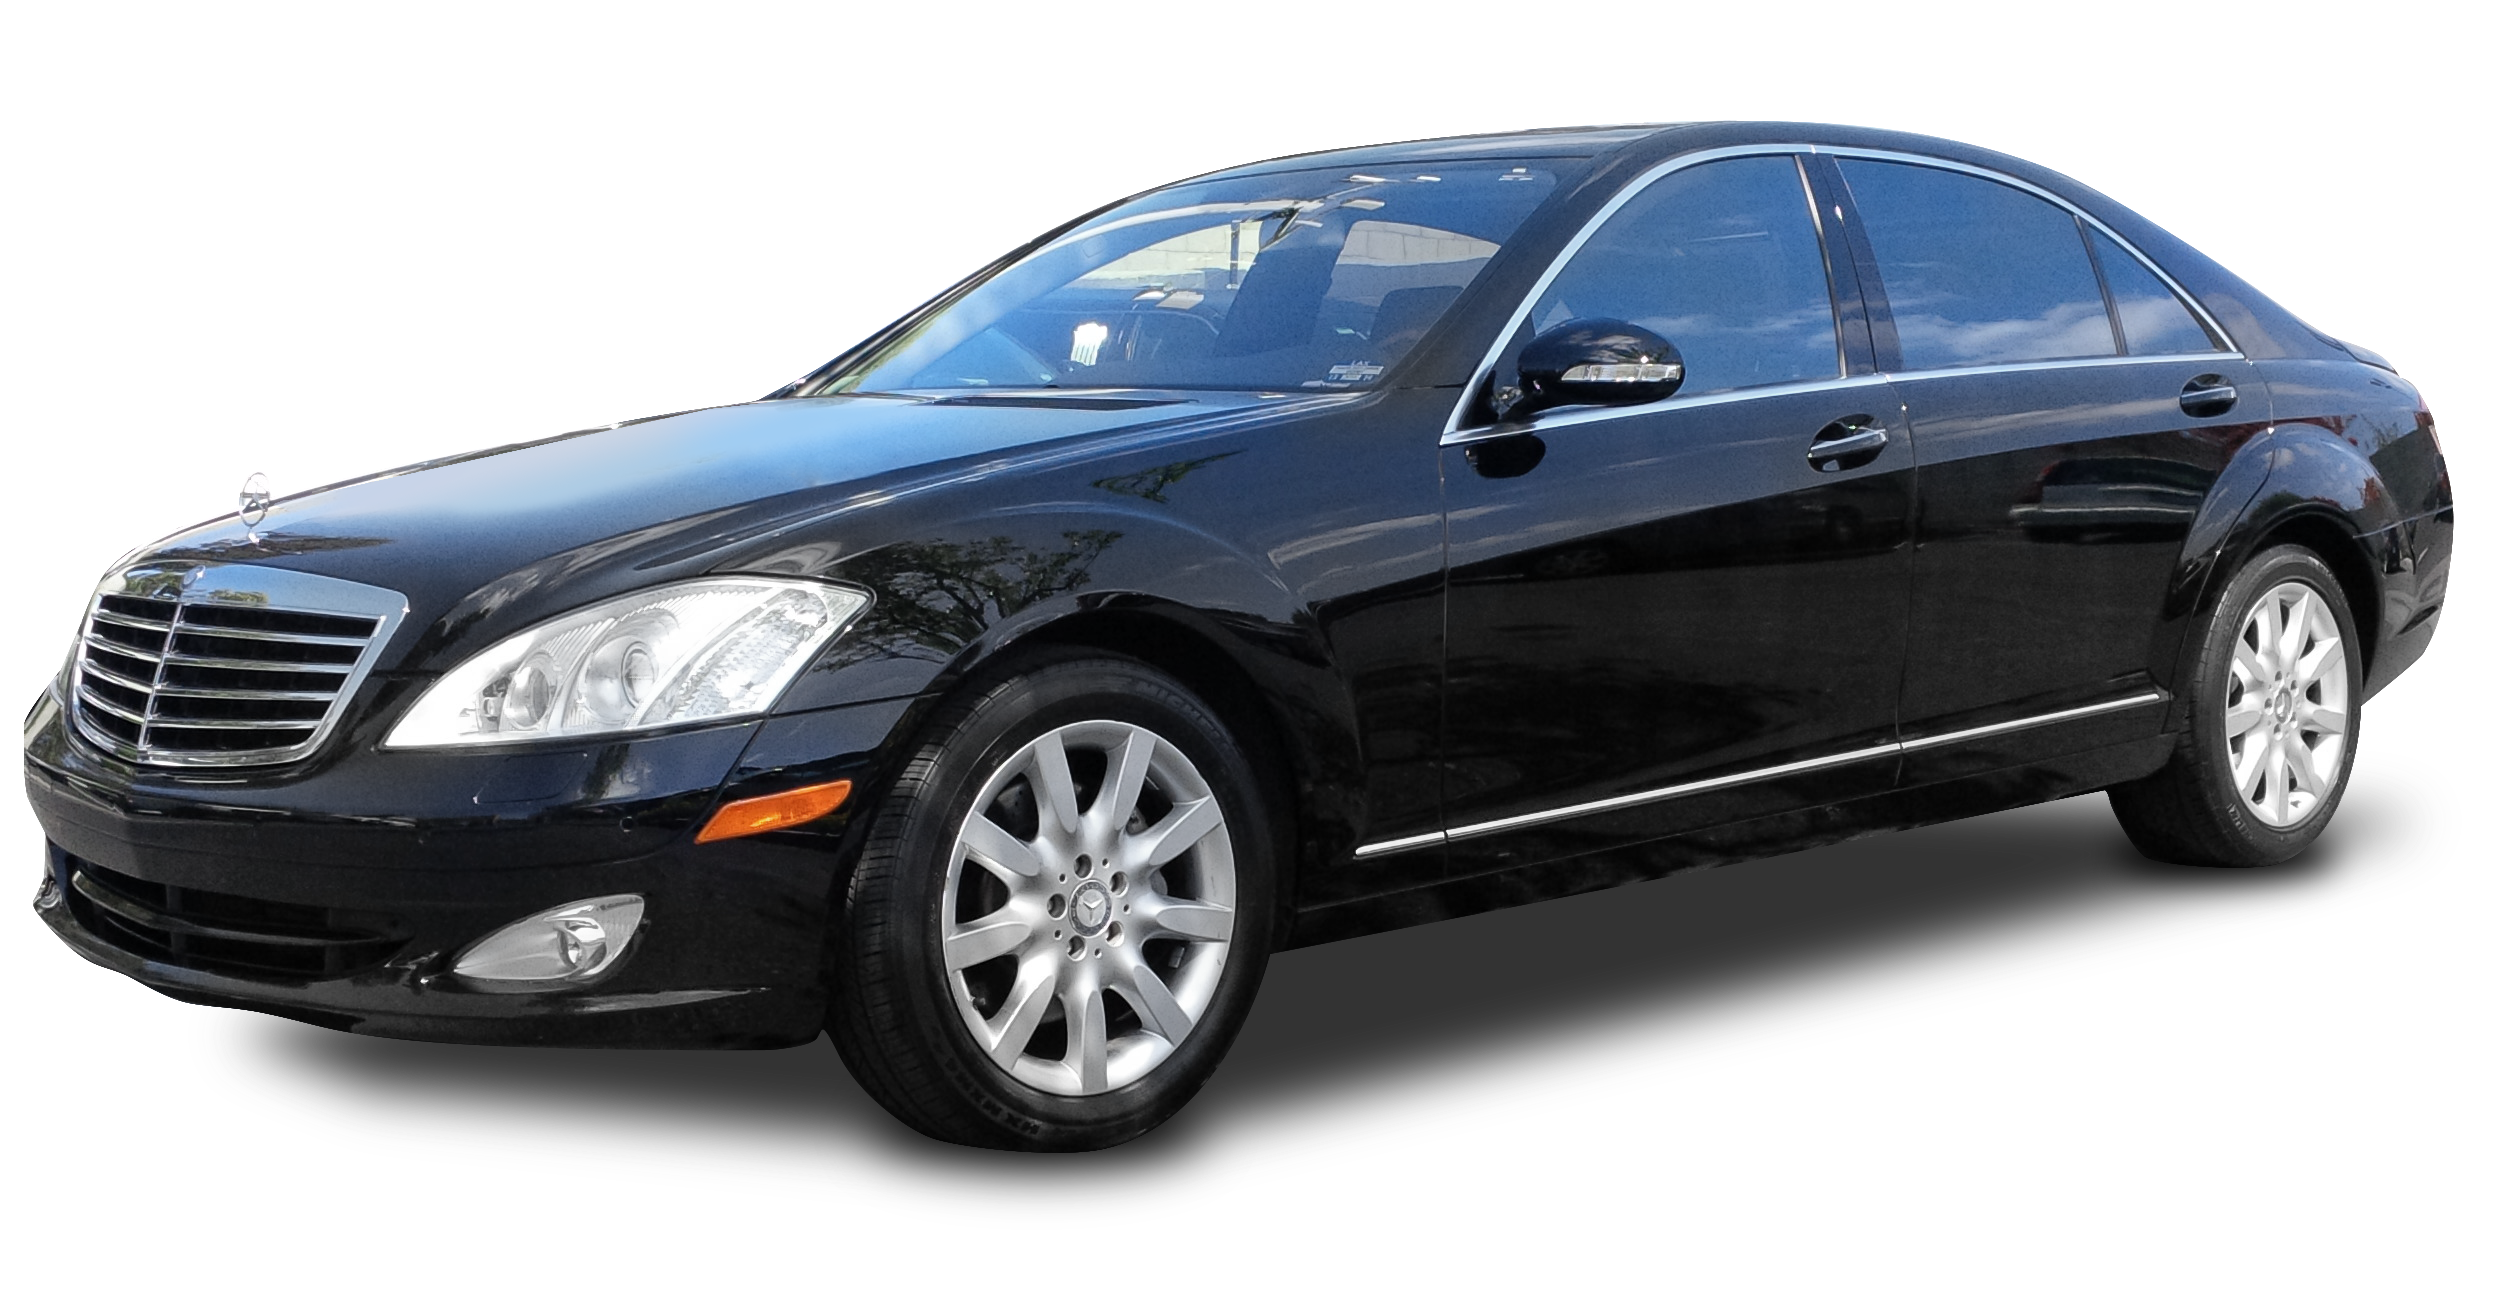 Mercedes benz s550 rental services in orange county for Mercedes benz s550 pictures